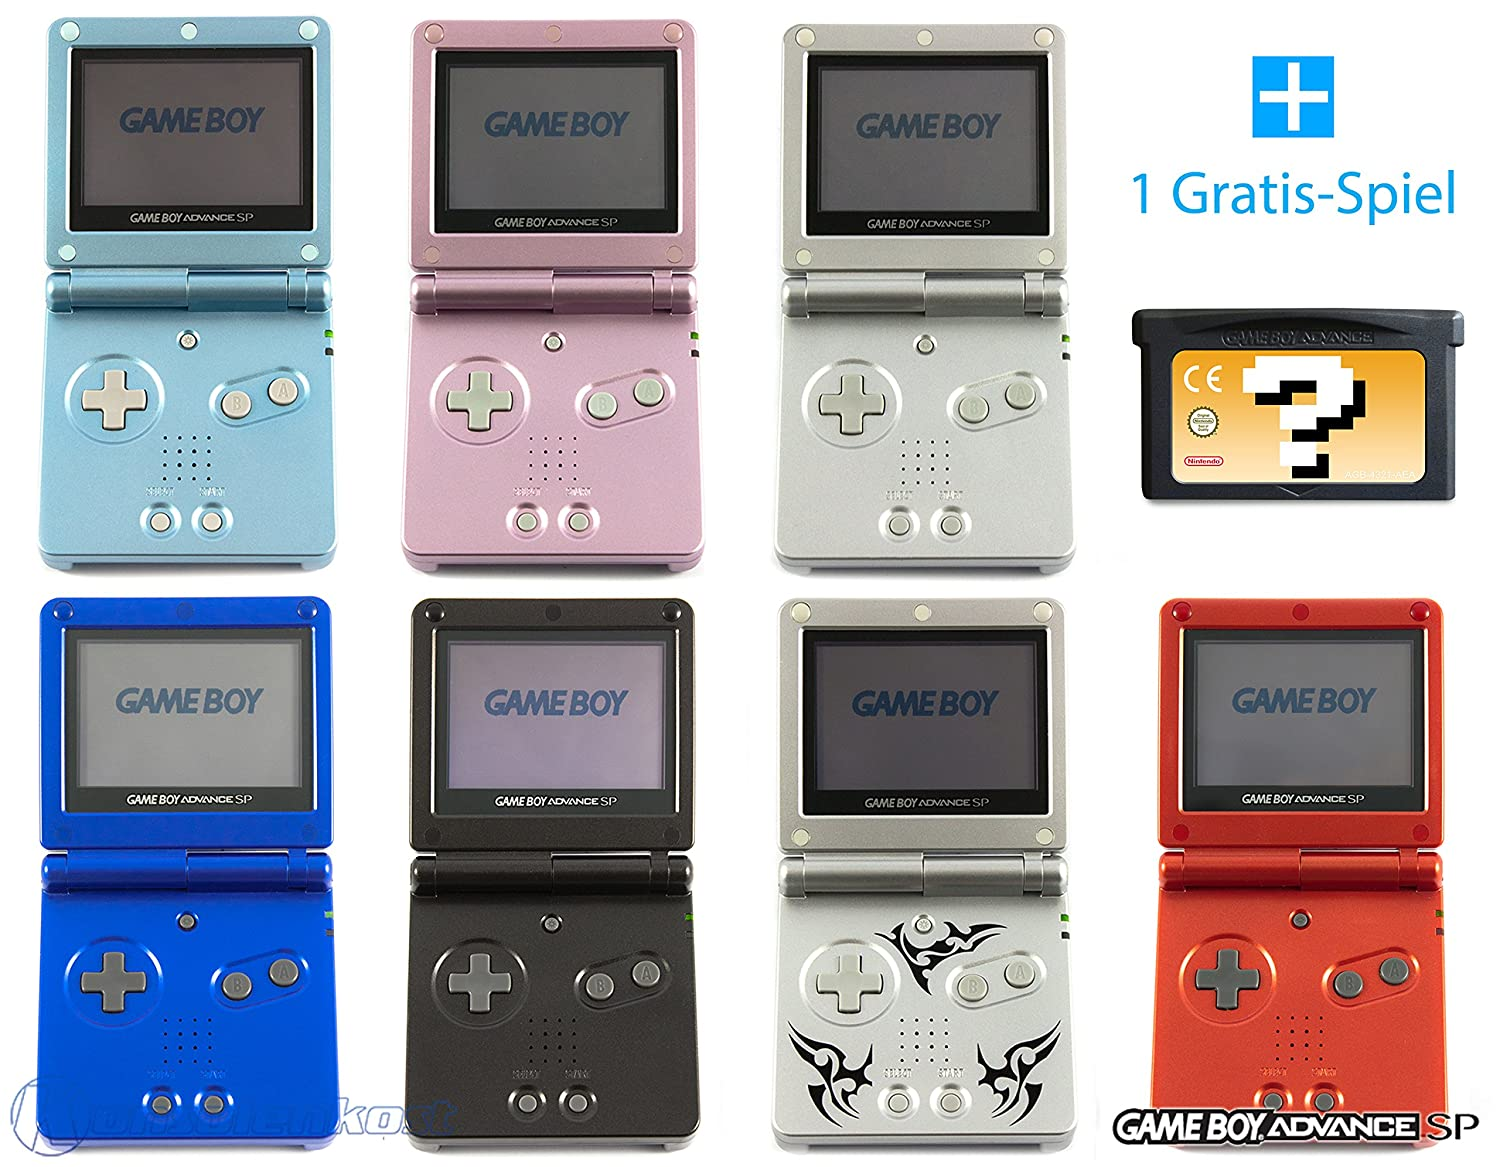 Game boy color kaufen - Gameboy Advance Sp Konsole Farbe Nach Wahl Gratis Spiel Amazon De Games